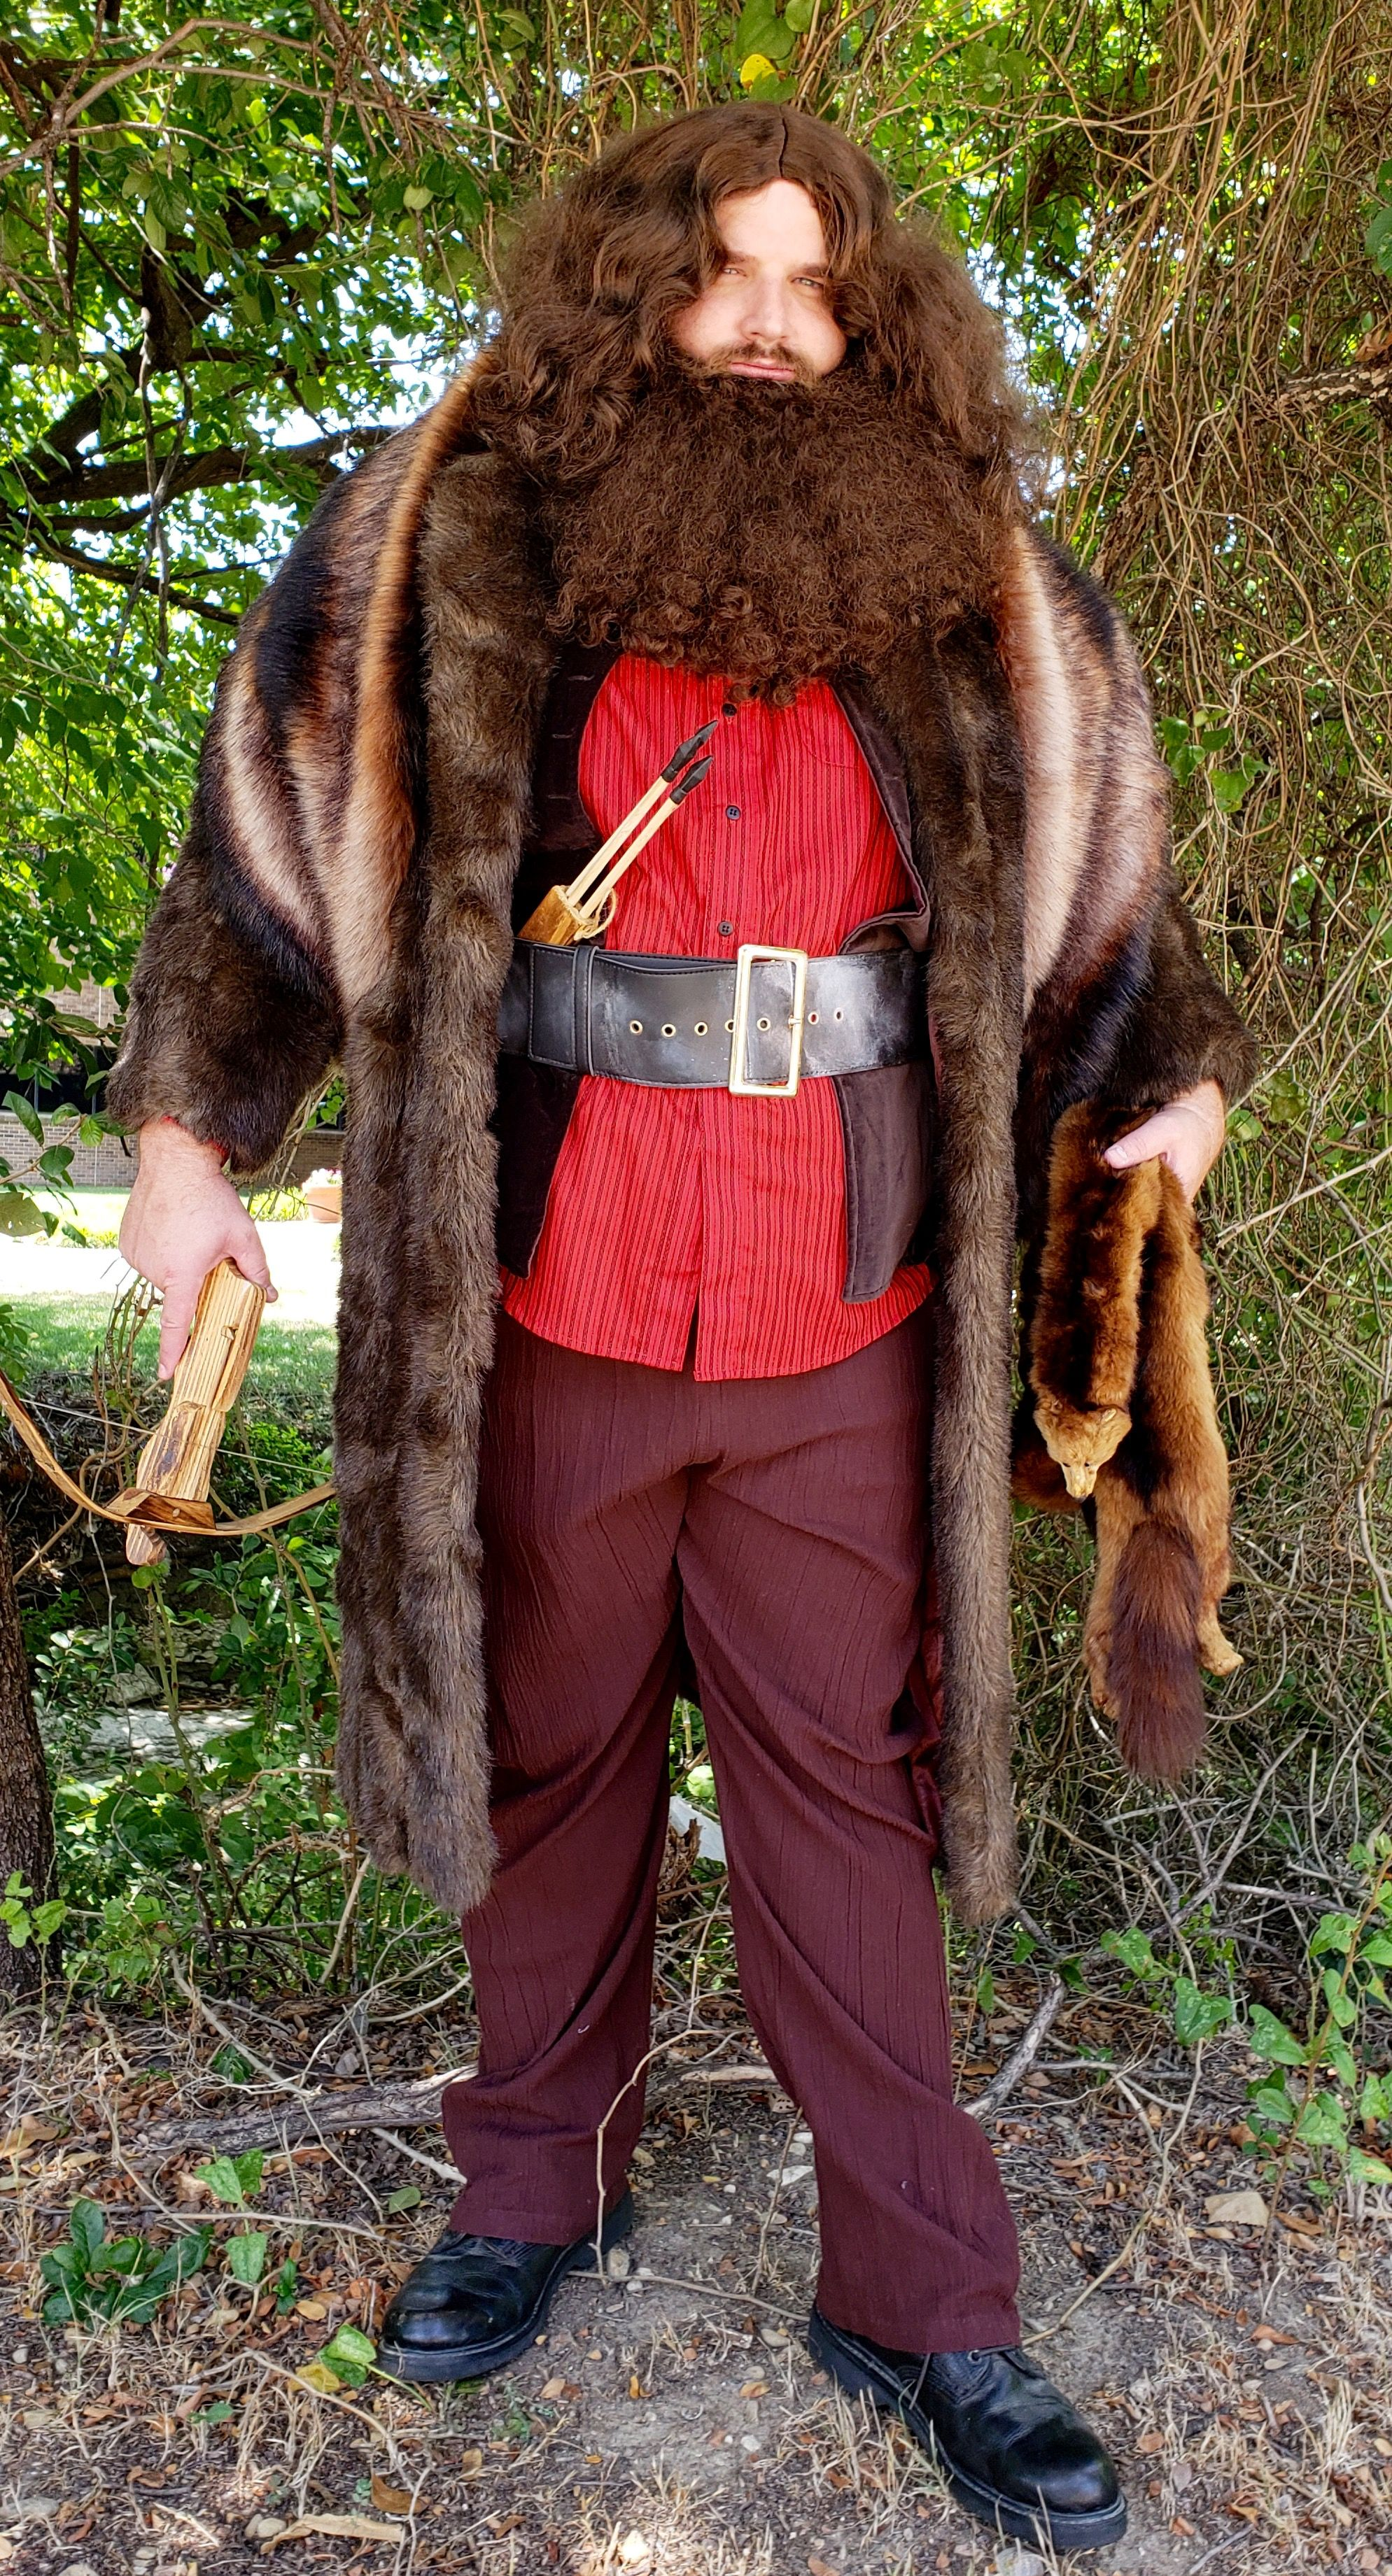 Rubeus Hagrid Cosplay Costume, Harry Potter Characters and